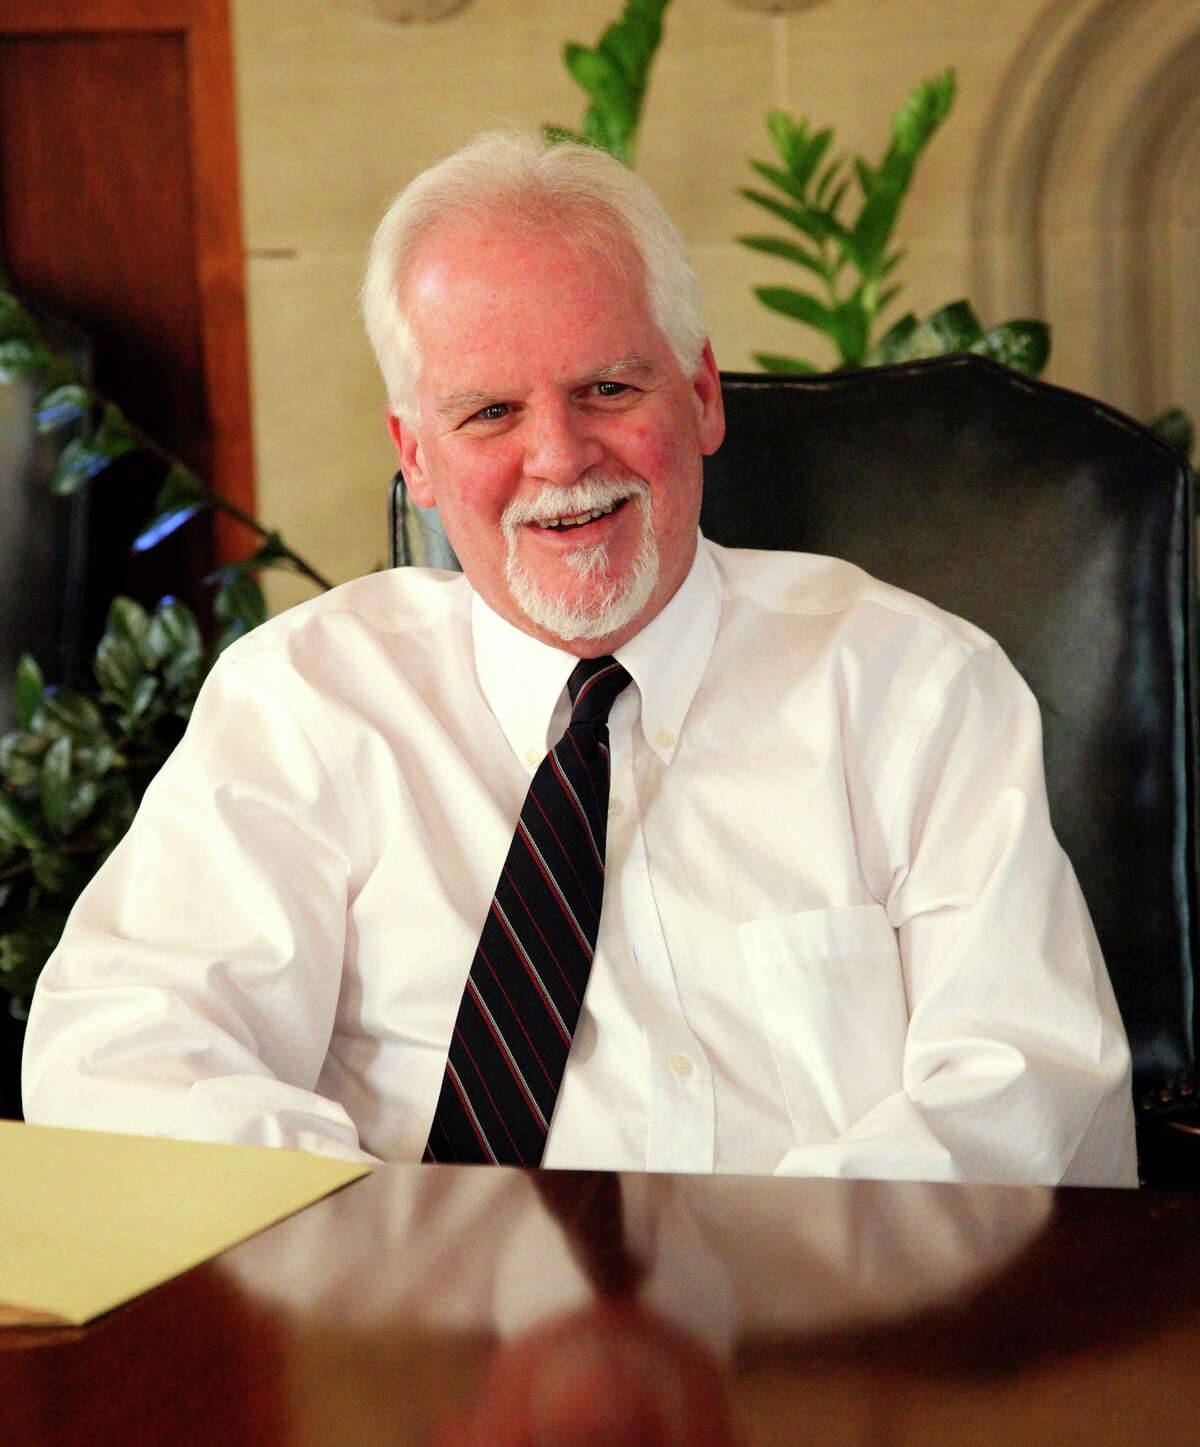 Democratic candidatefor the 21st Congressional District Tom Wakely talks to Saen editorial board on Tuesday February 9, 2016